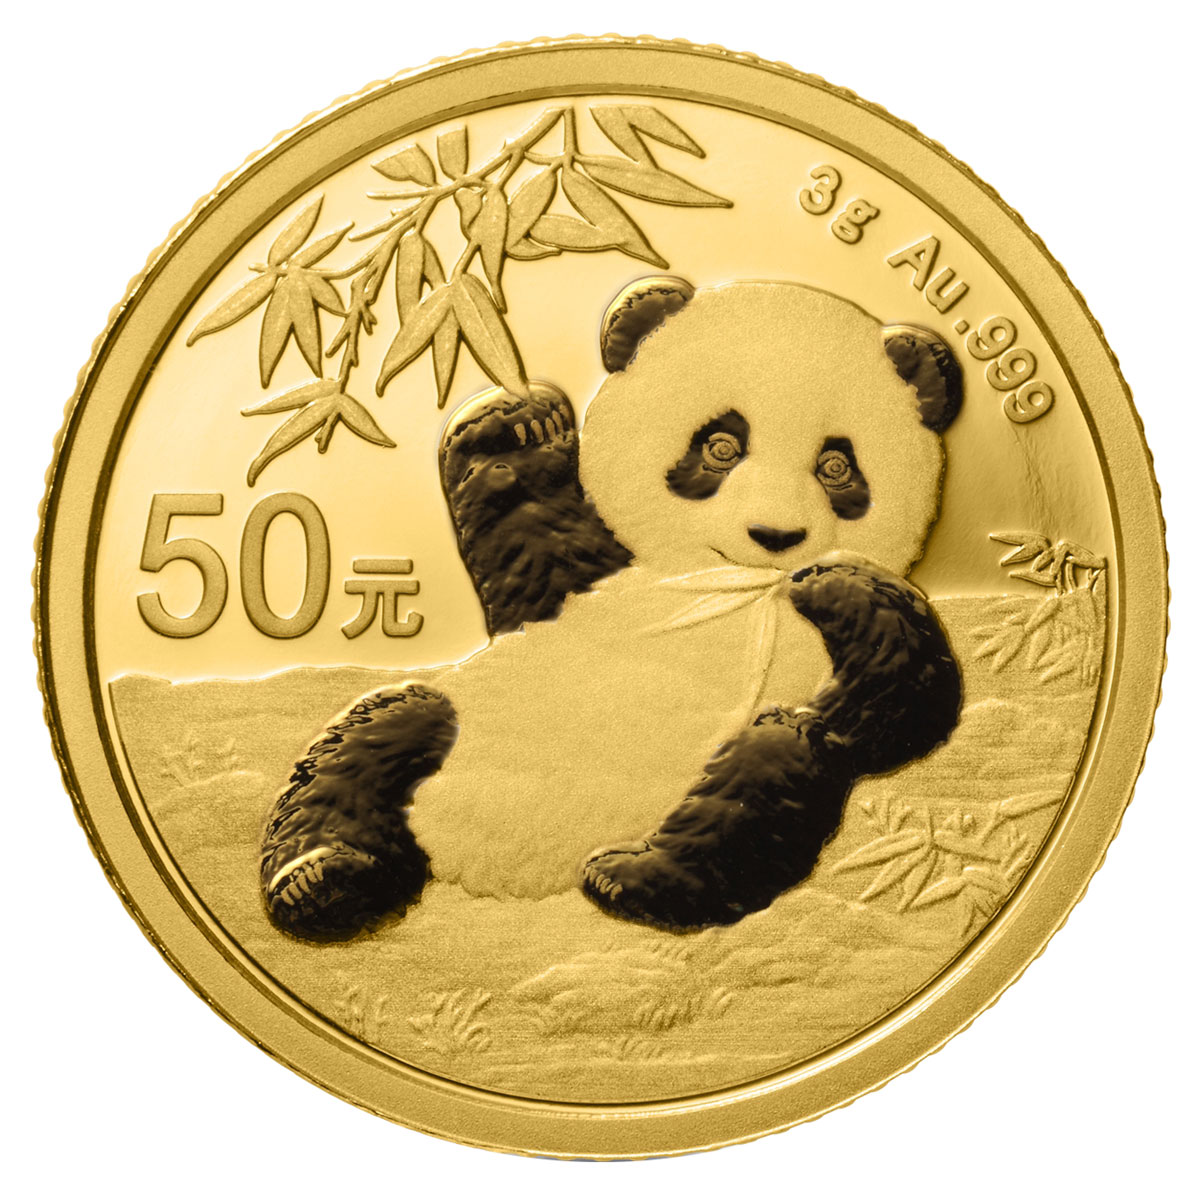 2020 China 3 g Gold Panda ¥50 Coin GEM BU